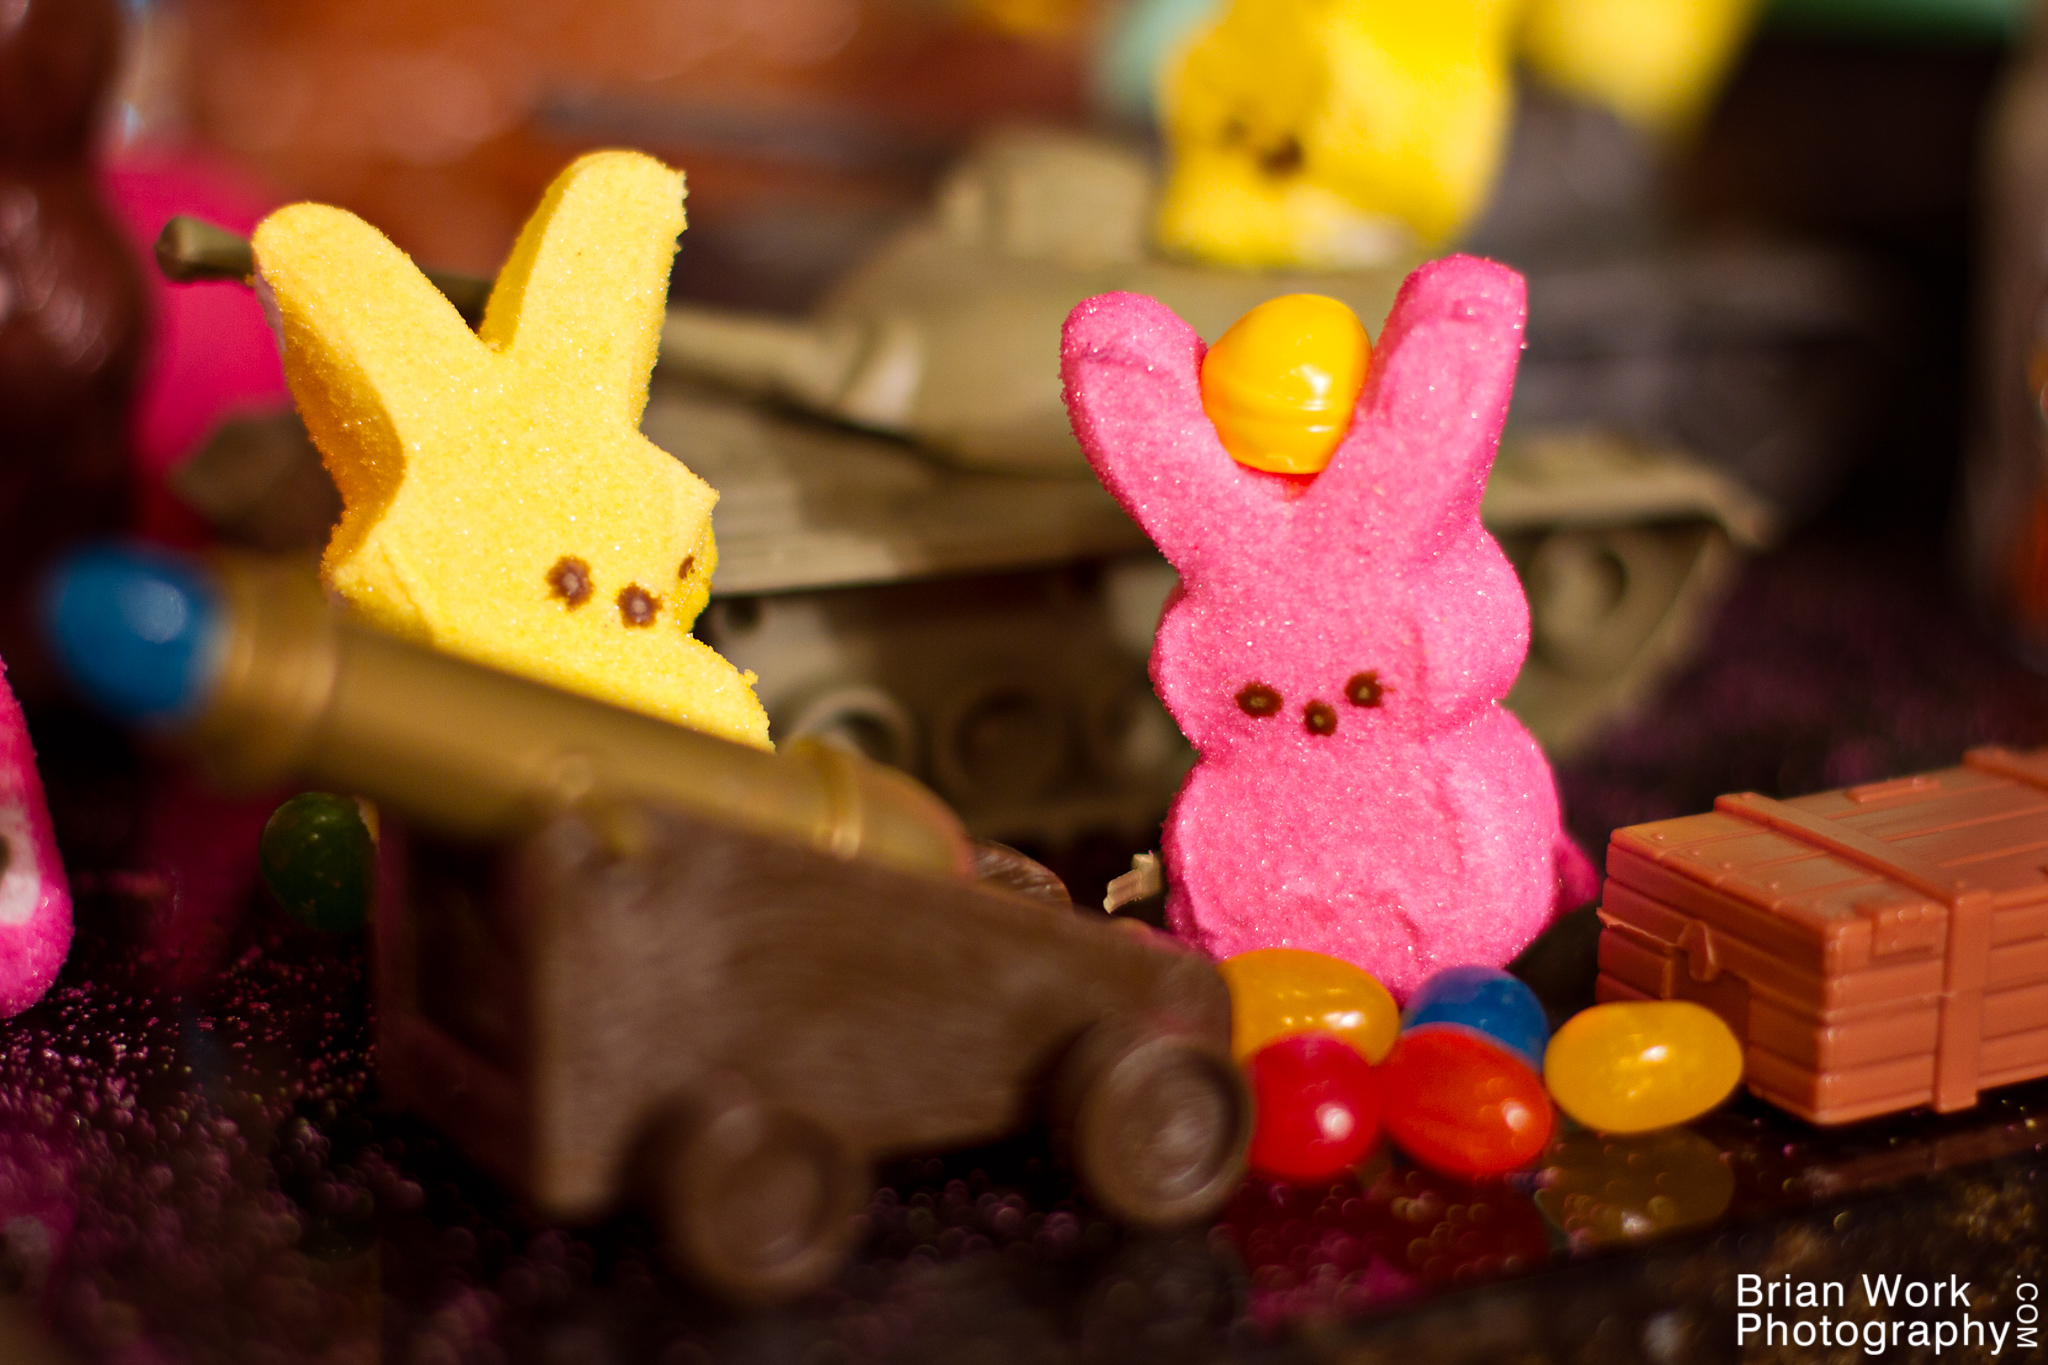 <h5>Cannoneer Bunnson hurled mockery and insults at his foes, confident in the superior firepower of the bunnies.</h5>